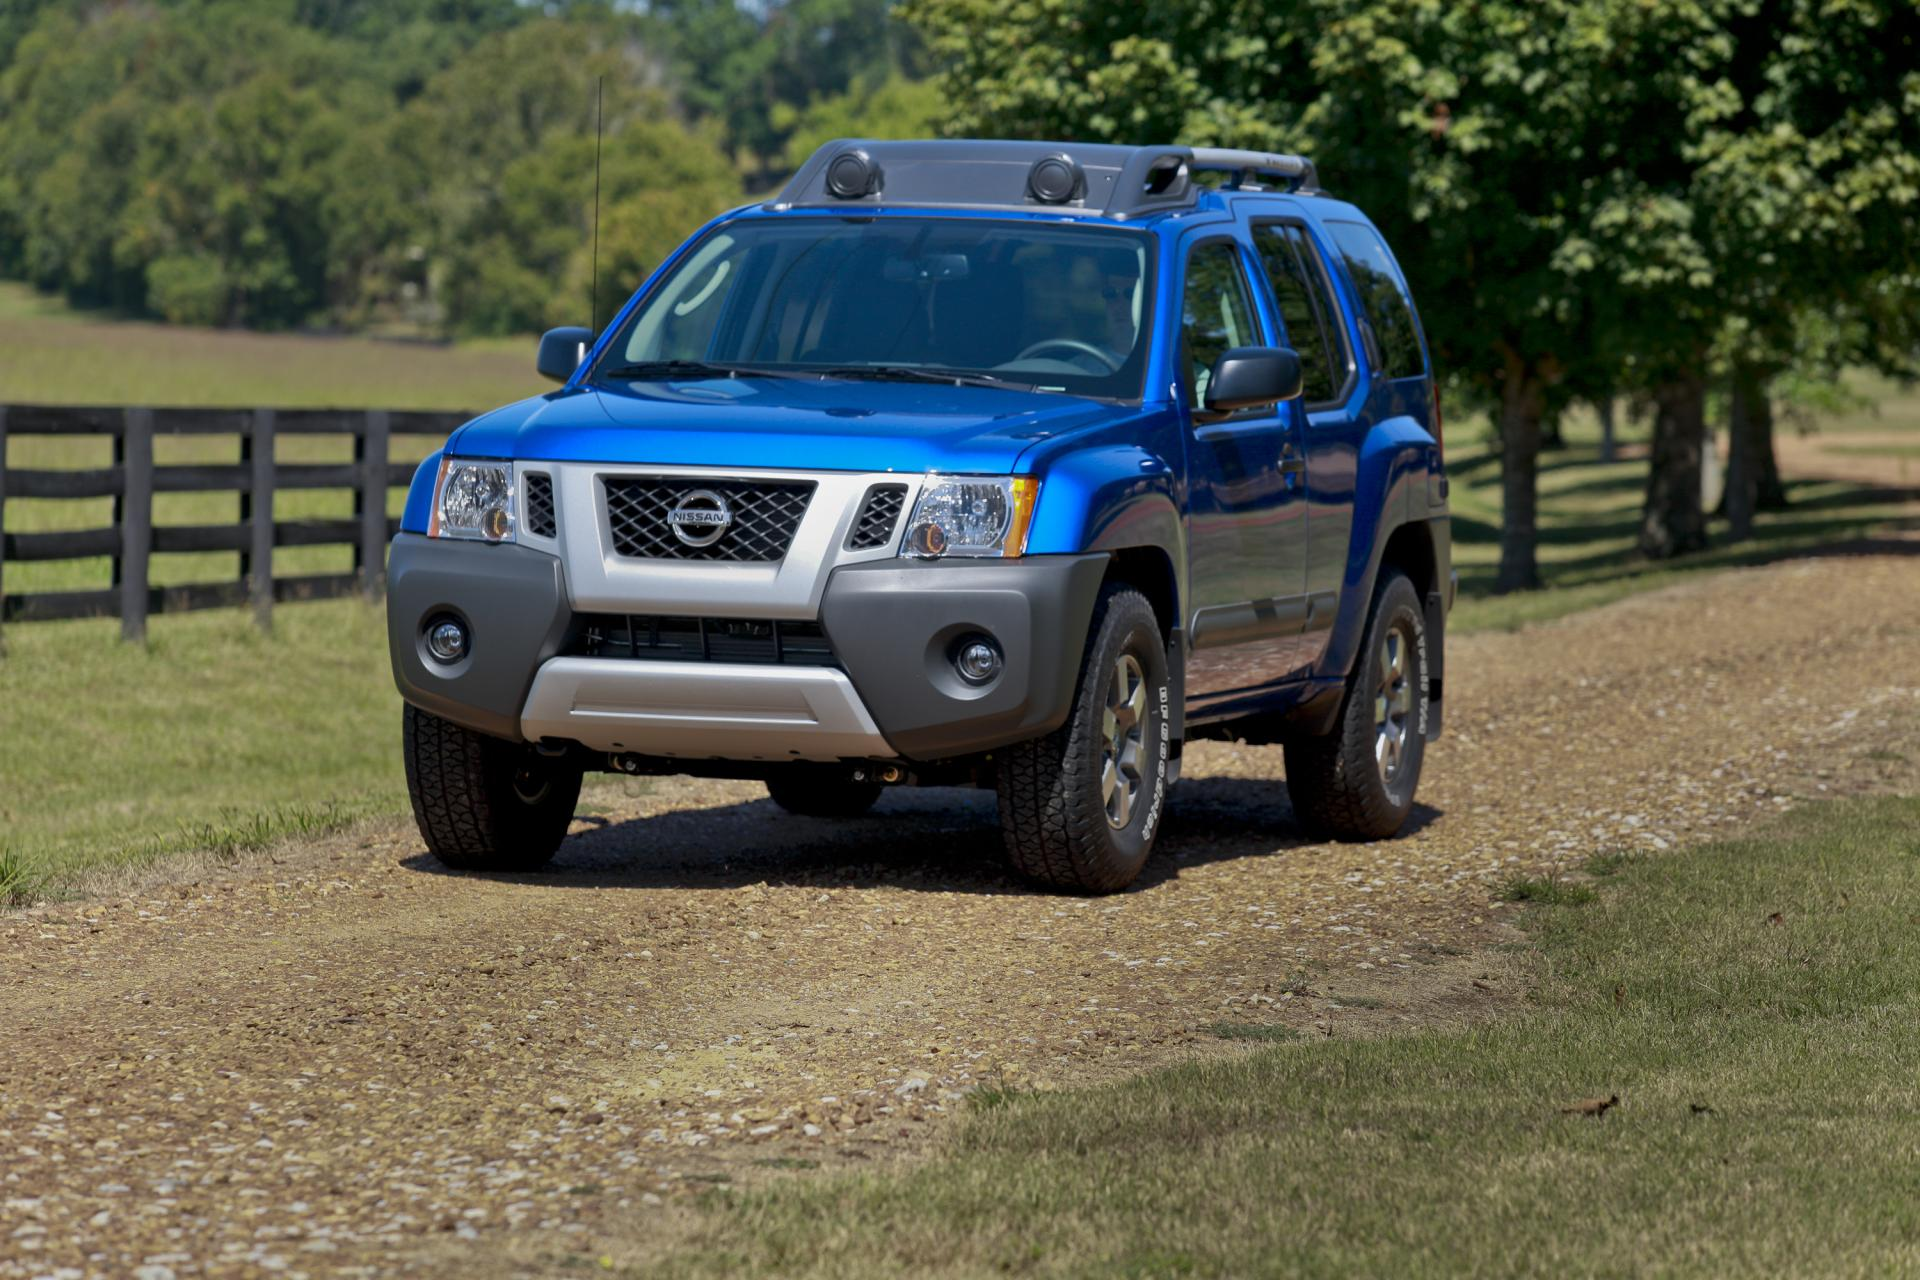 2012 Nissan Xterra Technical Specifications and data